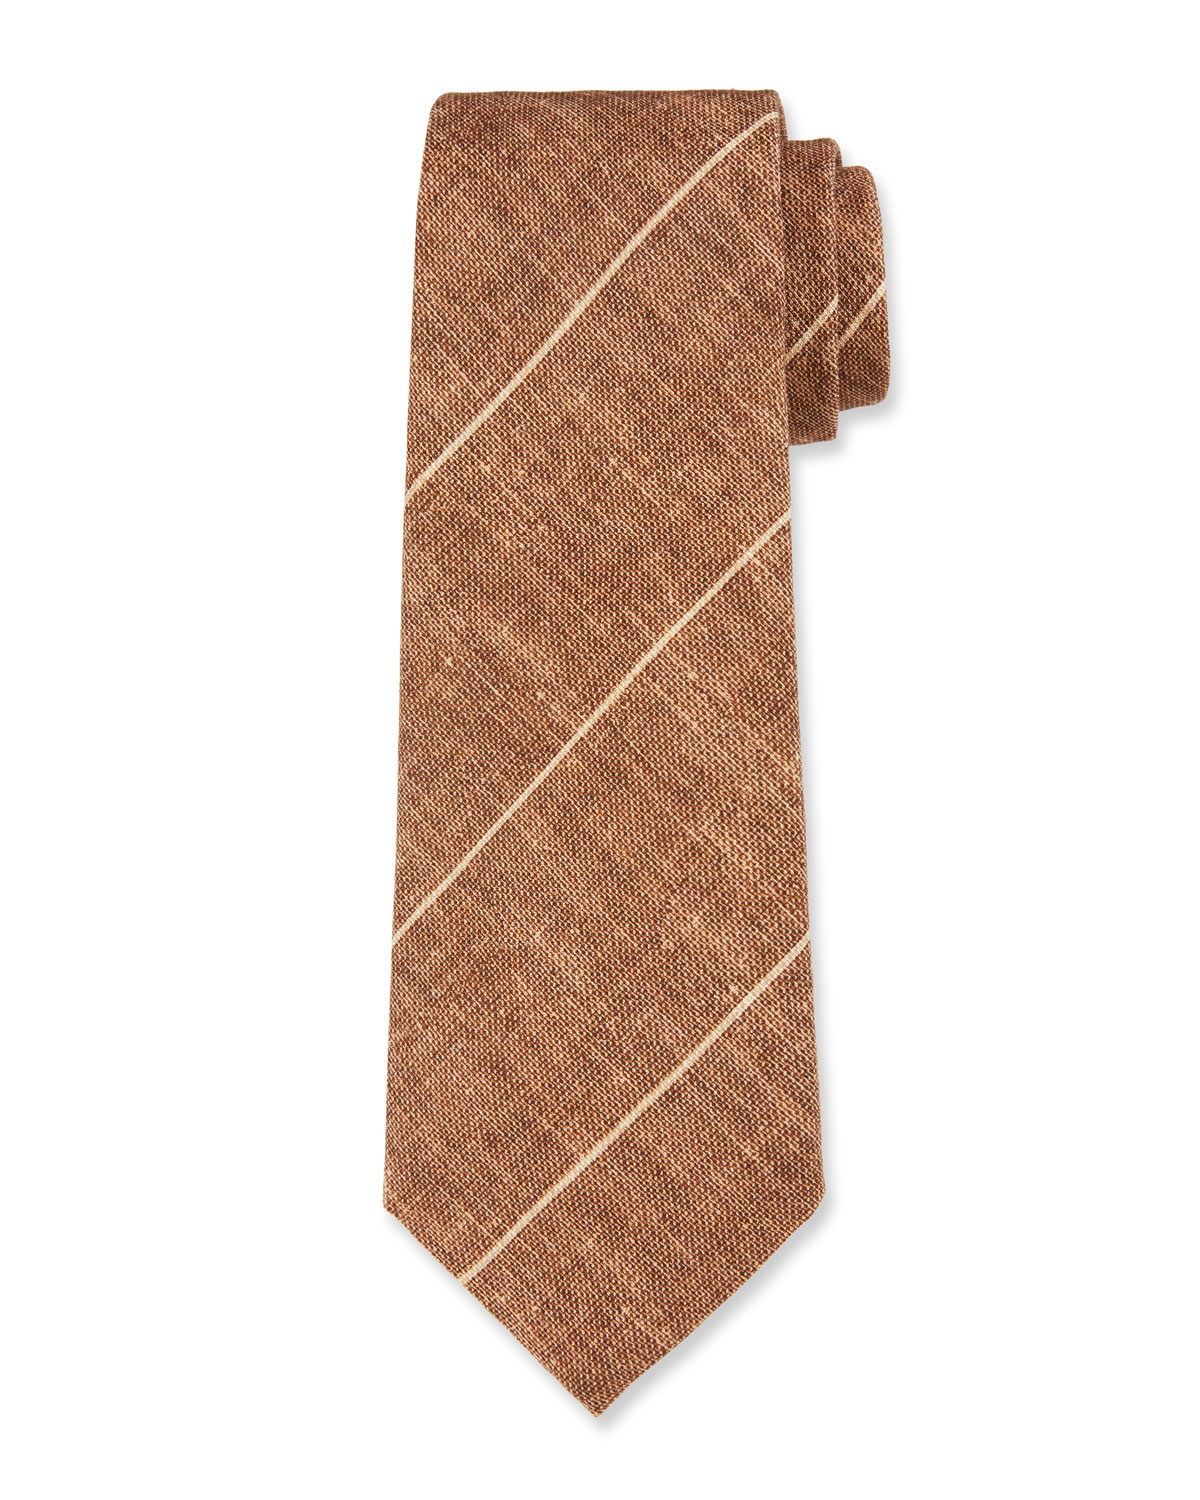 Thin-Striped Linen/Silk Tie